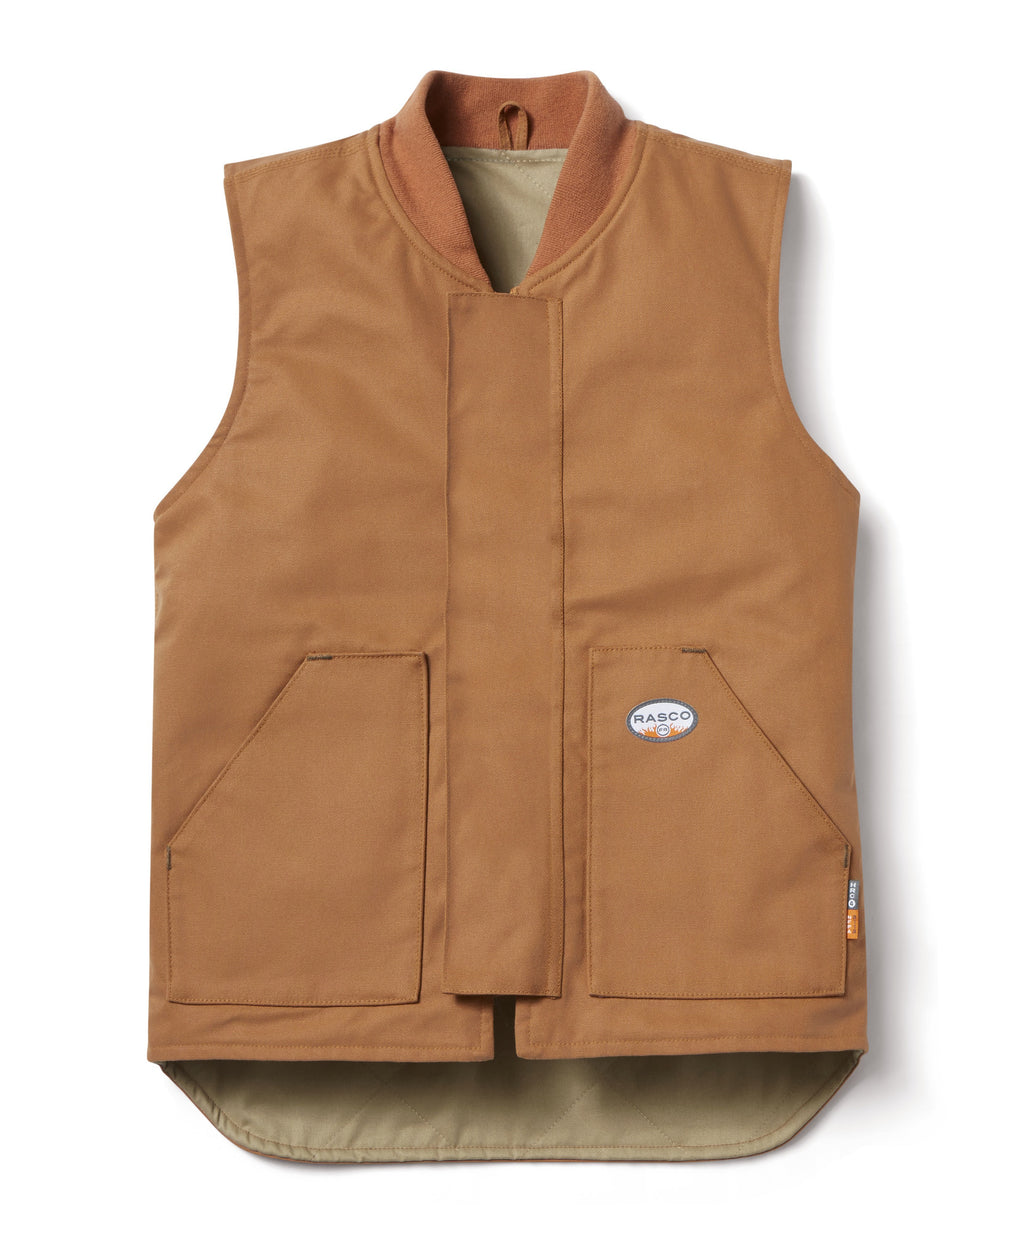 New Rasco FR Work Vest